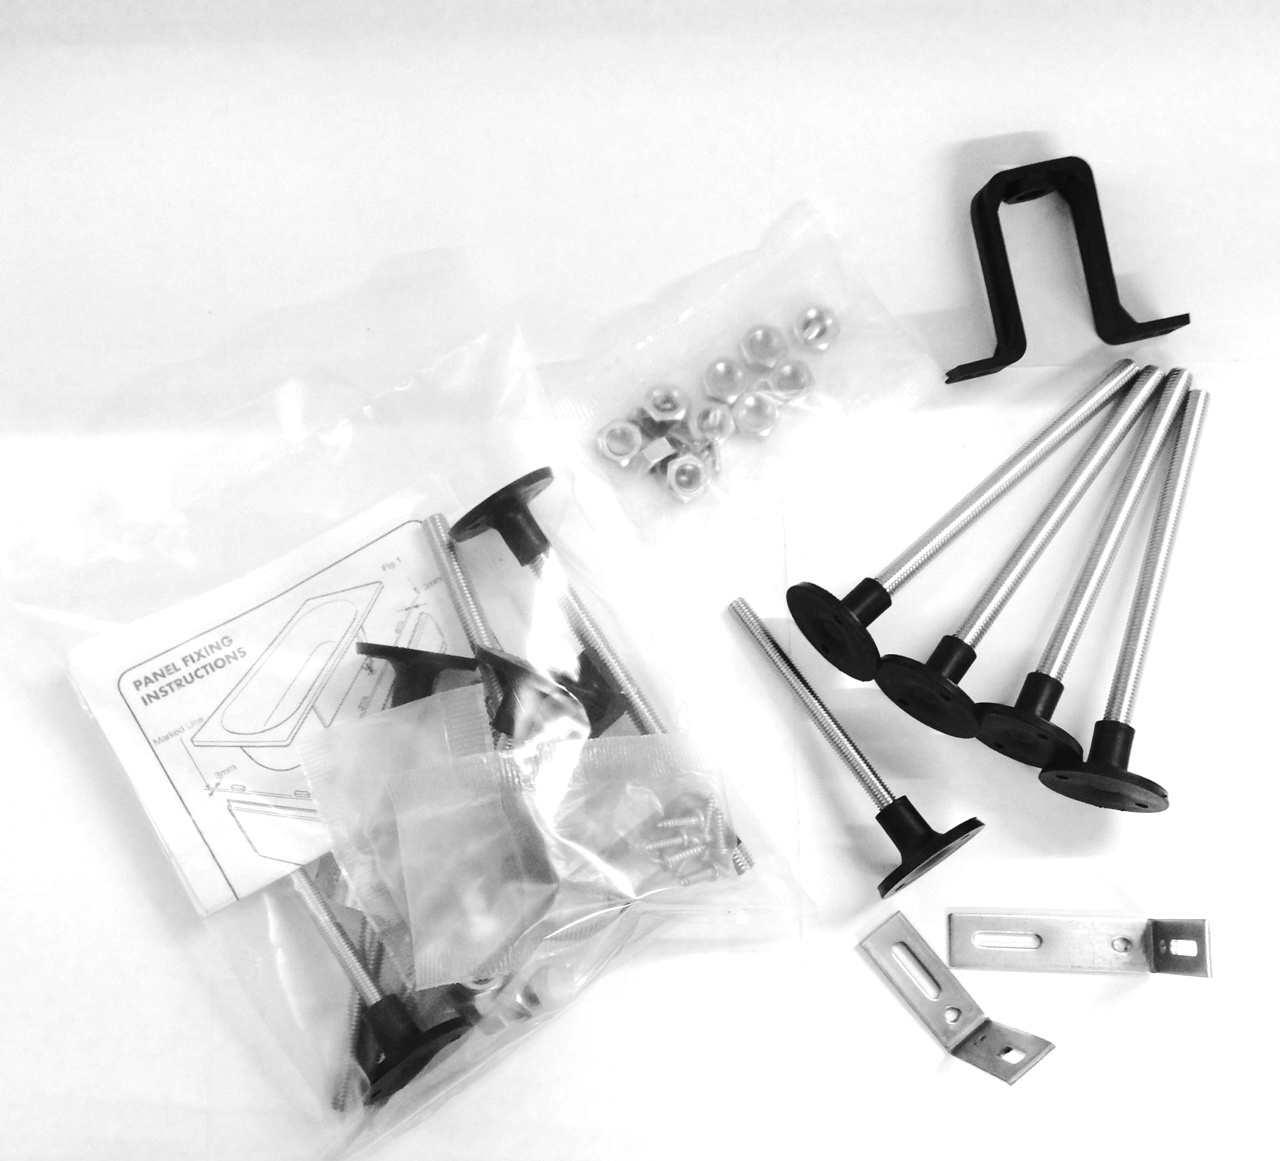 Contents of a bath kit assembled